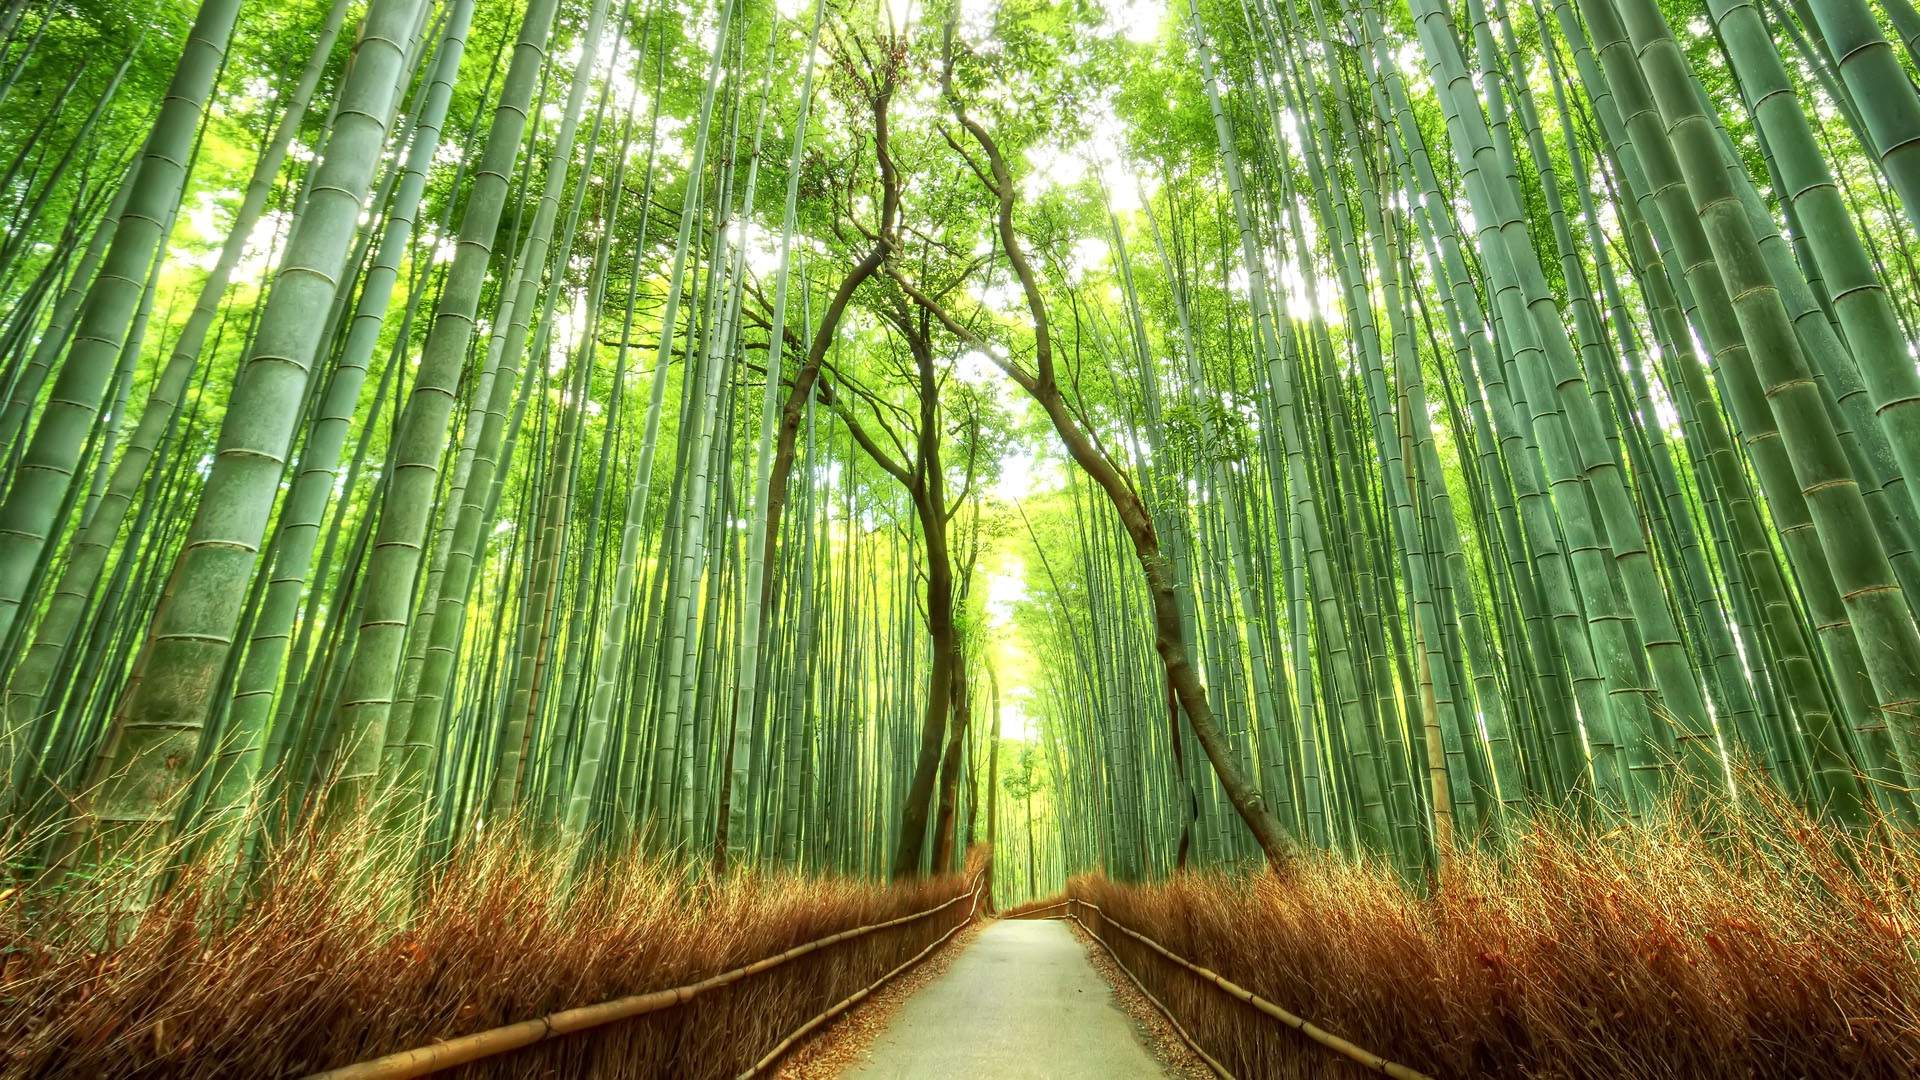 Chinese Bedroom Bamboo Forest Japan Computer Wallpaper Wallpapersafari